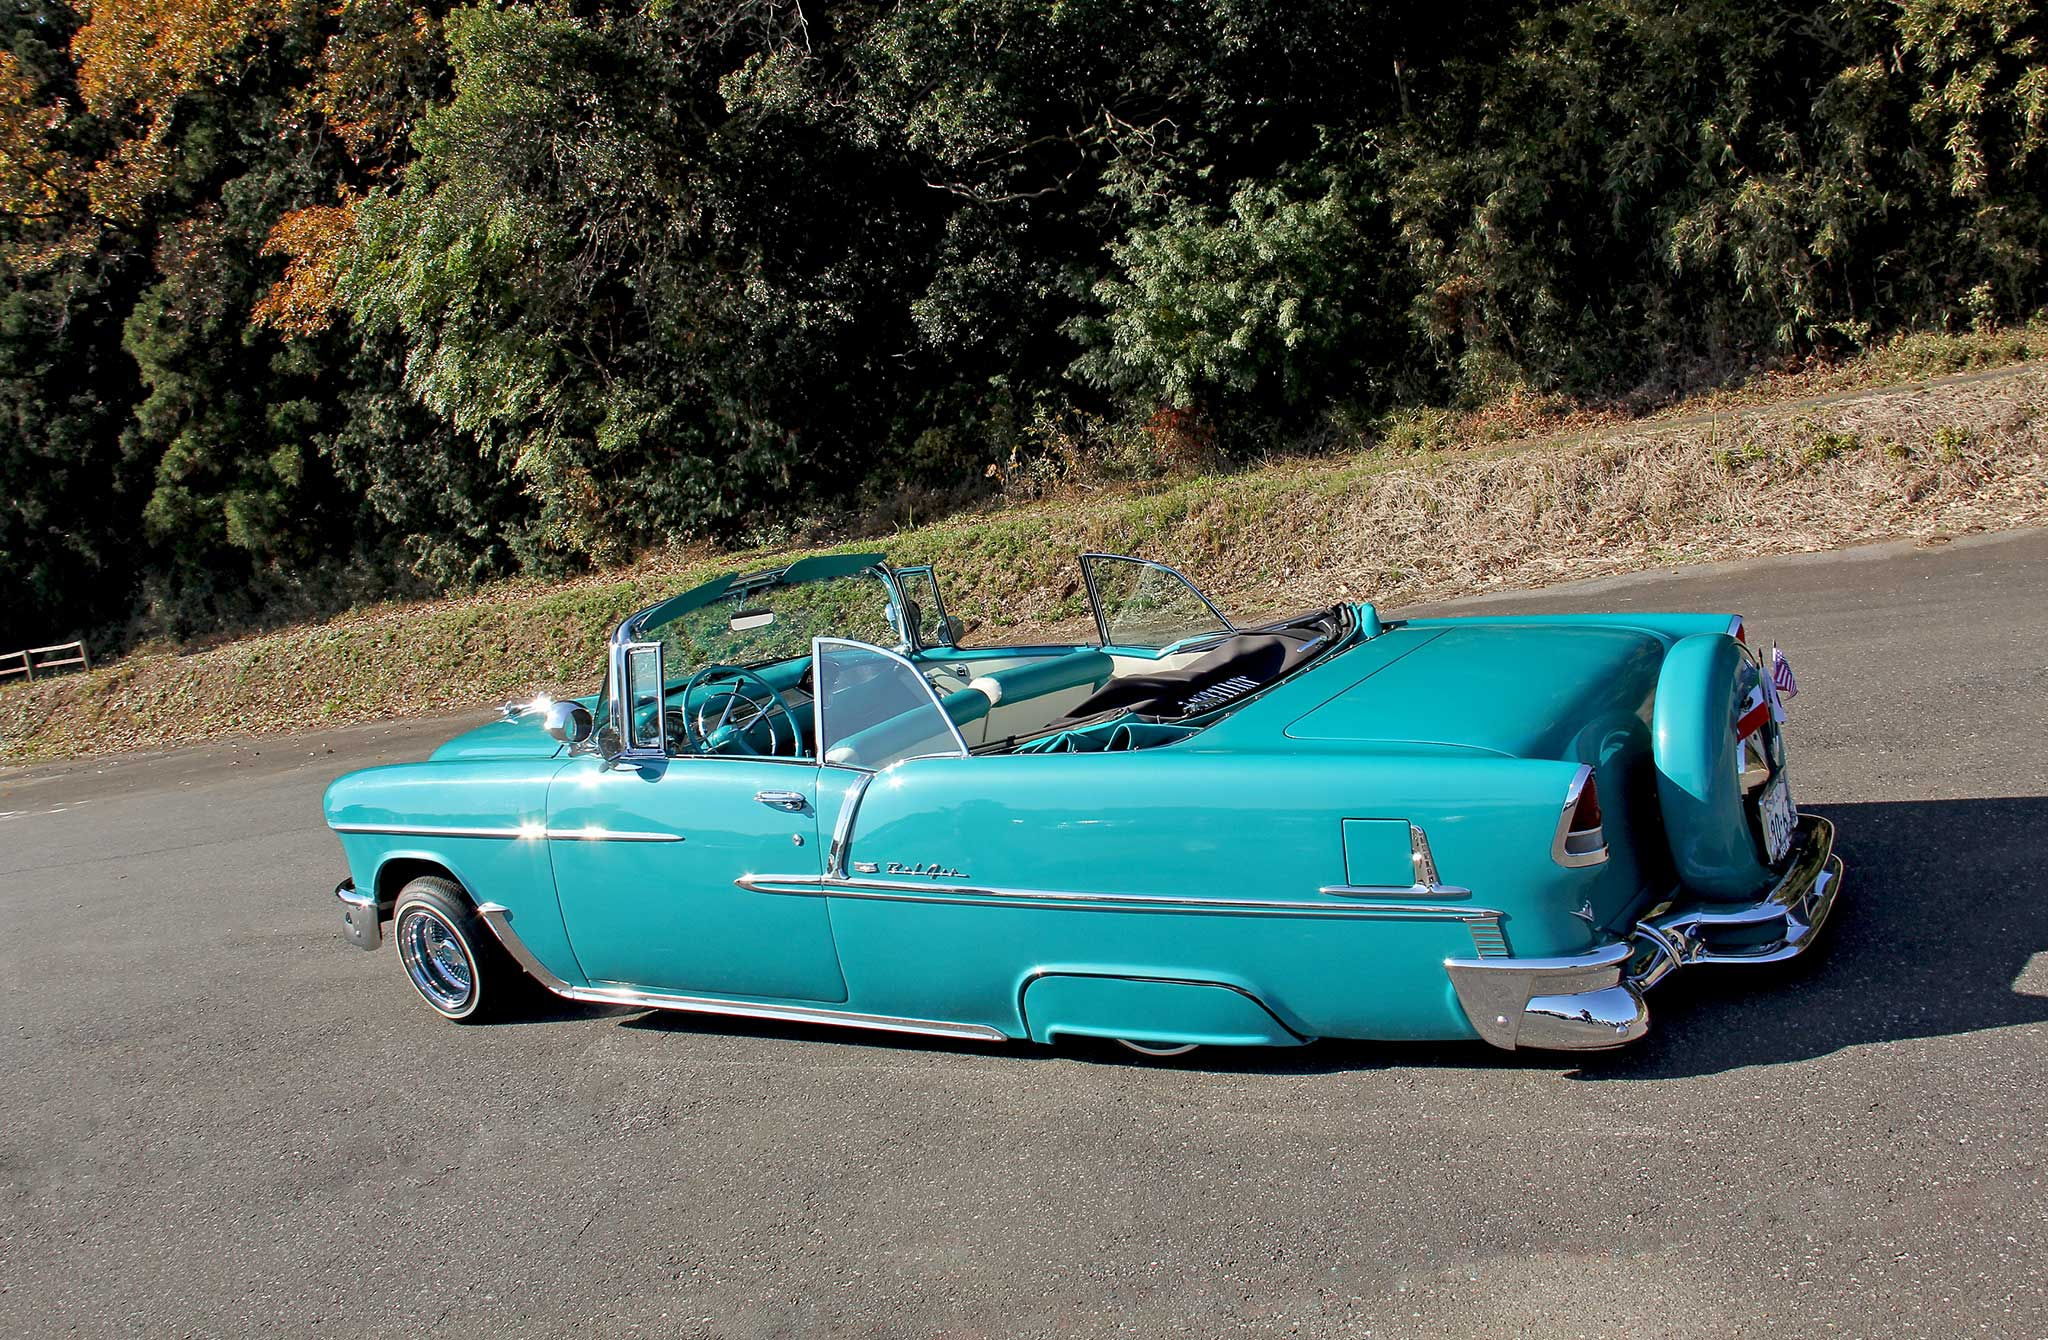 2016 Chevy Monte Carlo >> 1955 Chevy Bel Air Convertible - American Classic in Japan - Lowrider